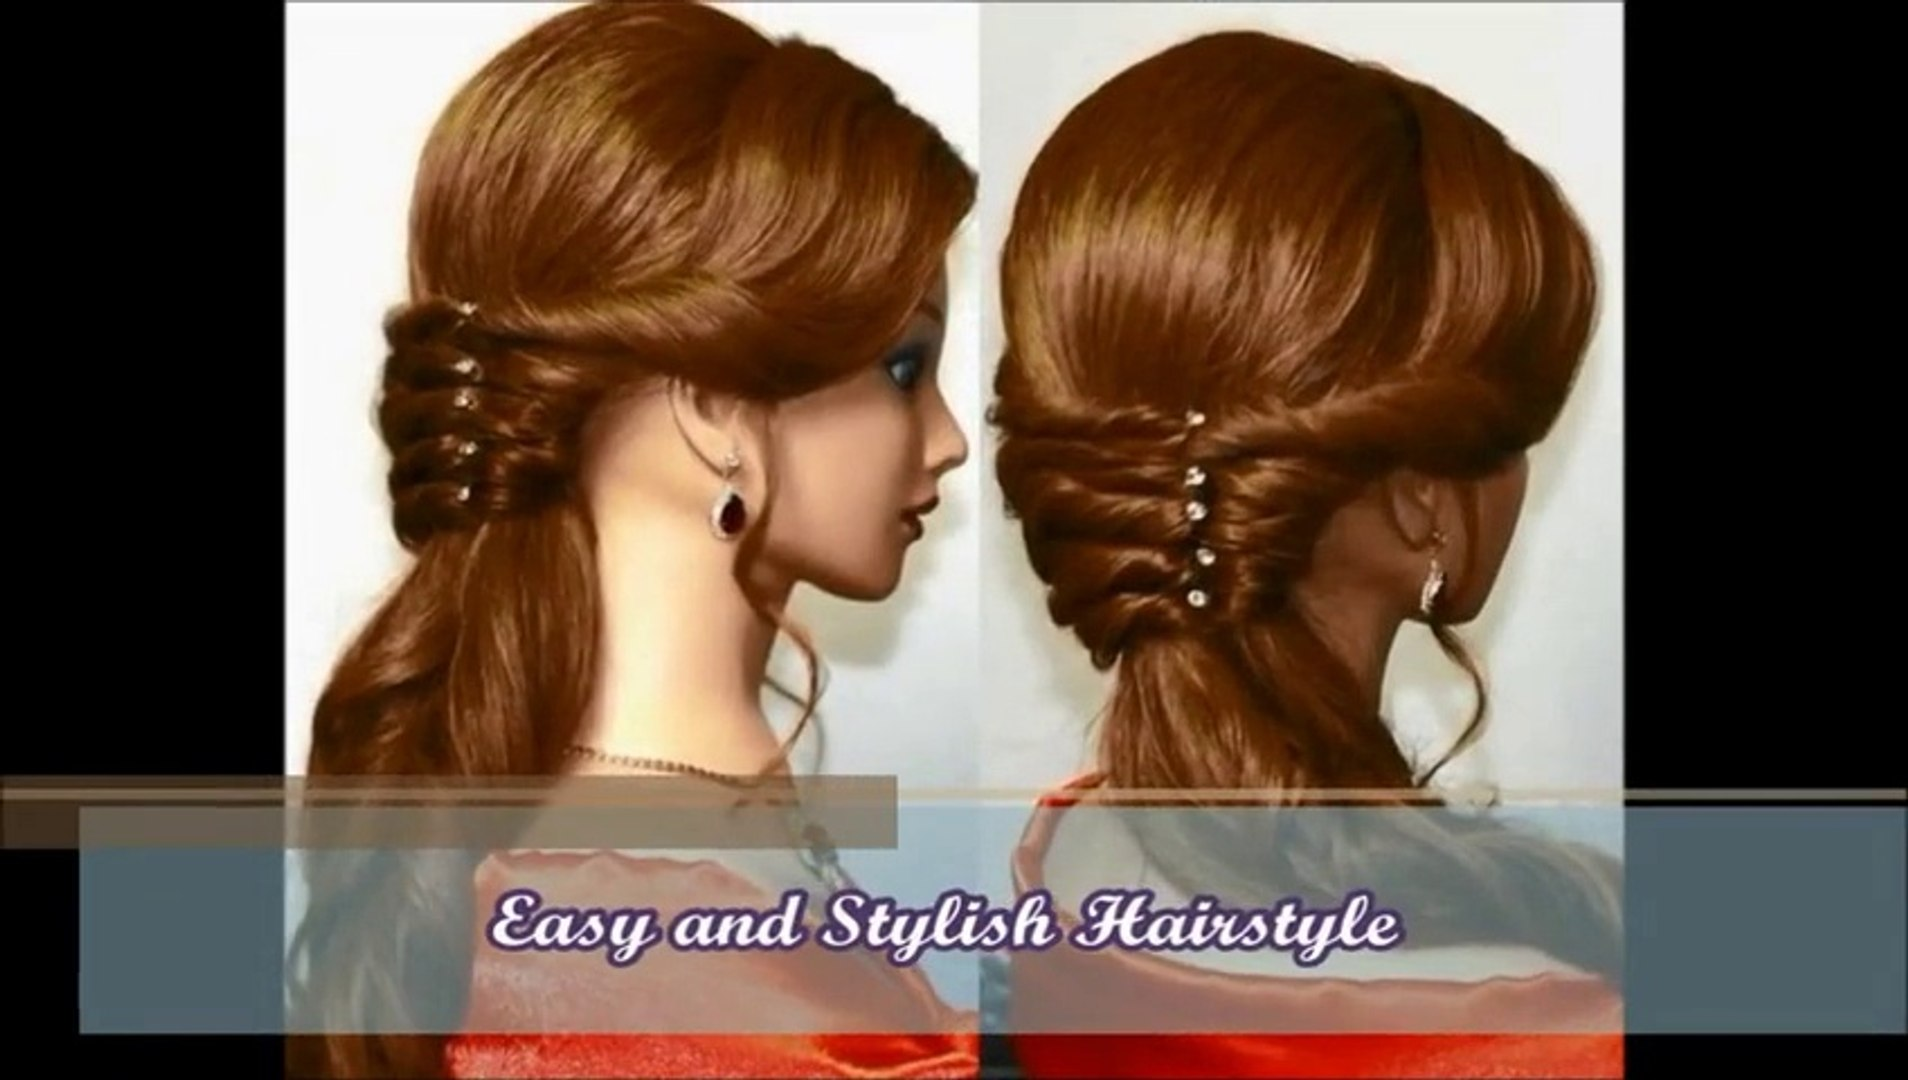 easy and stylish hairstyle